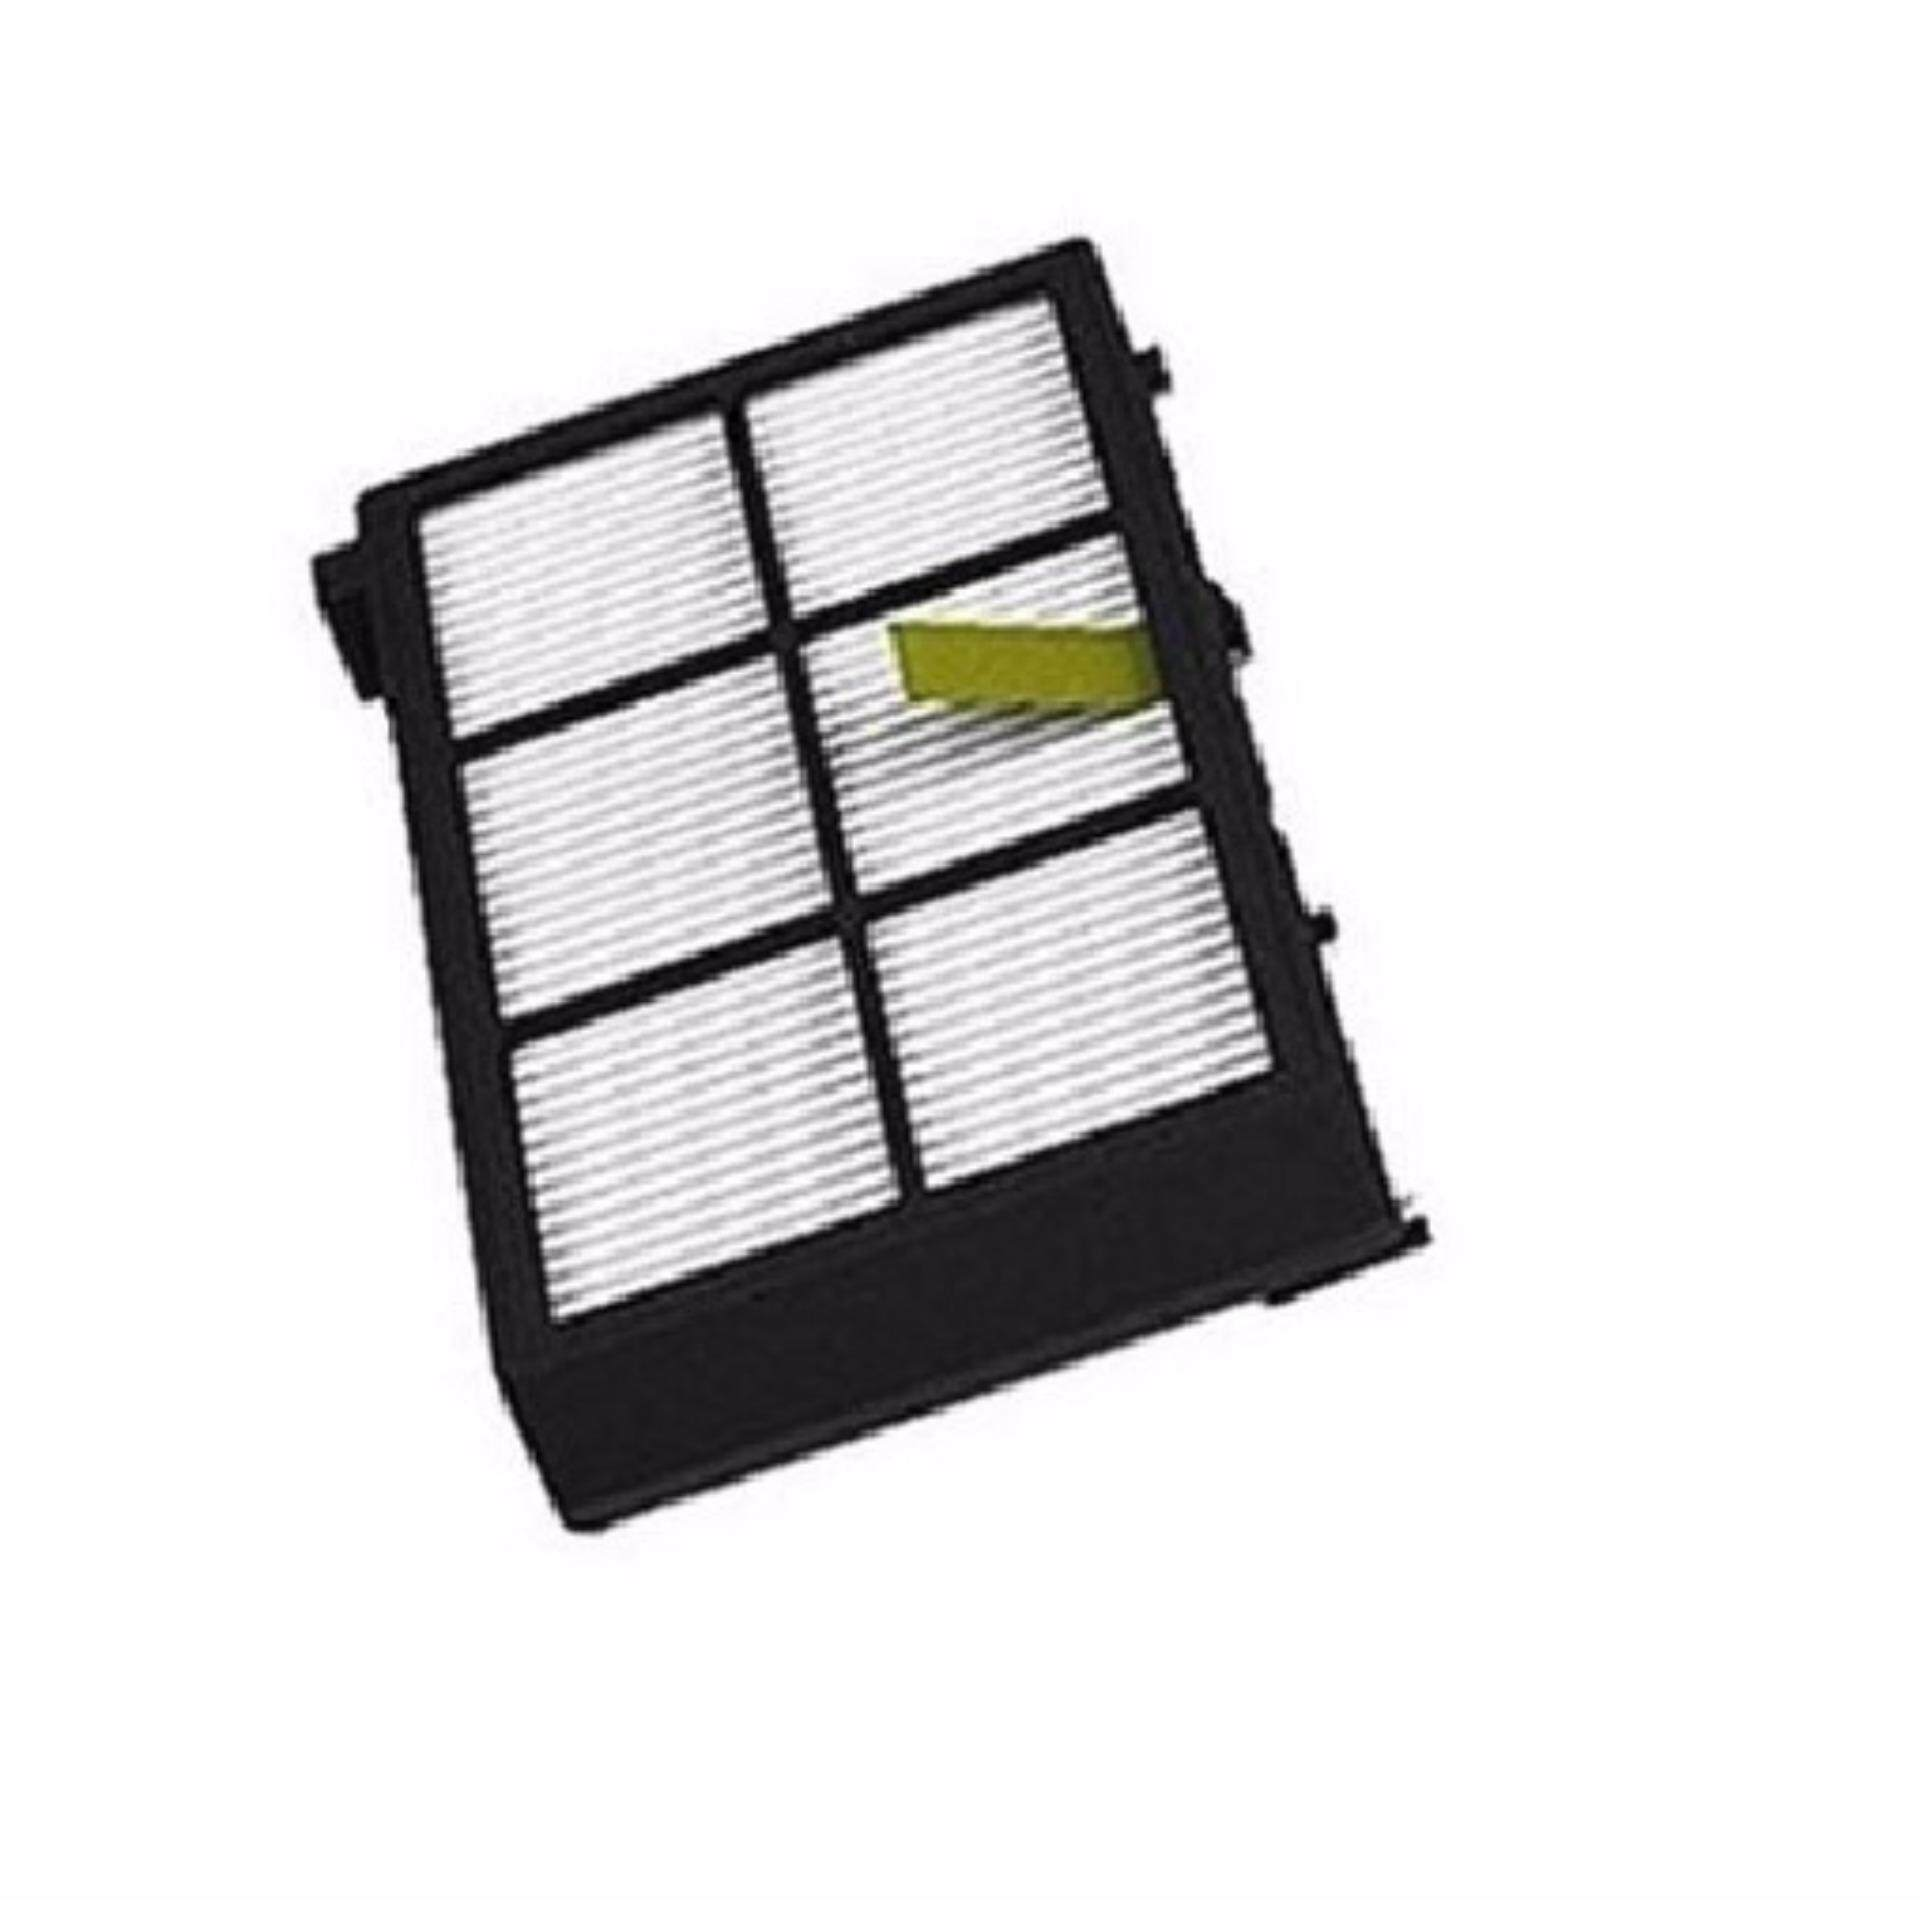 Hepa Filter for irobot Roomba 800 870 880 980